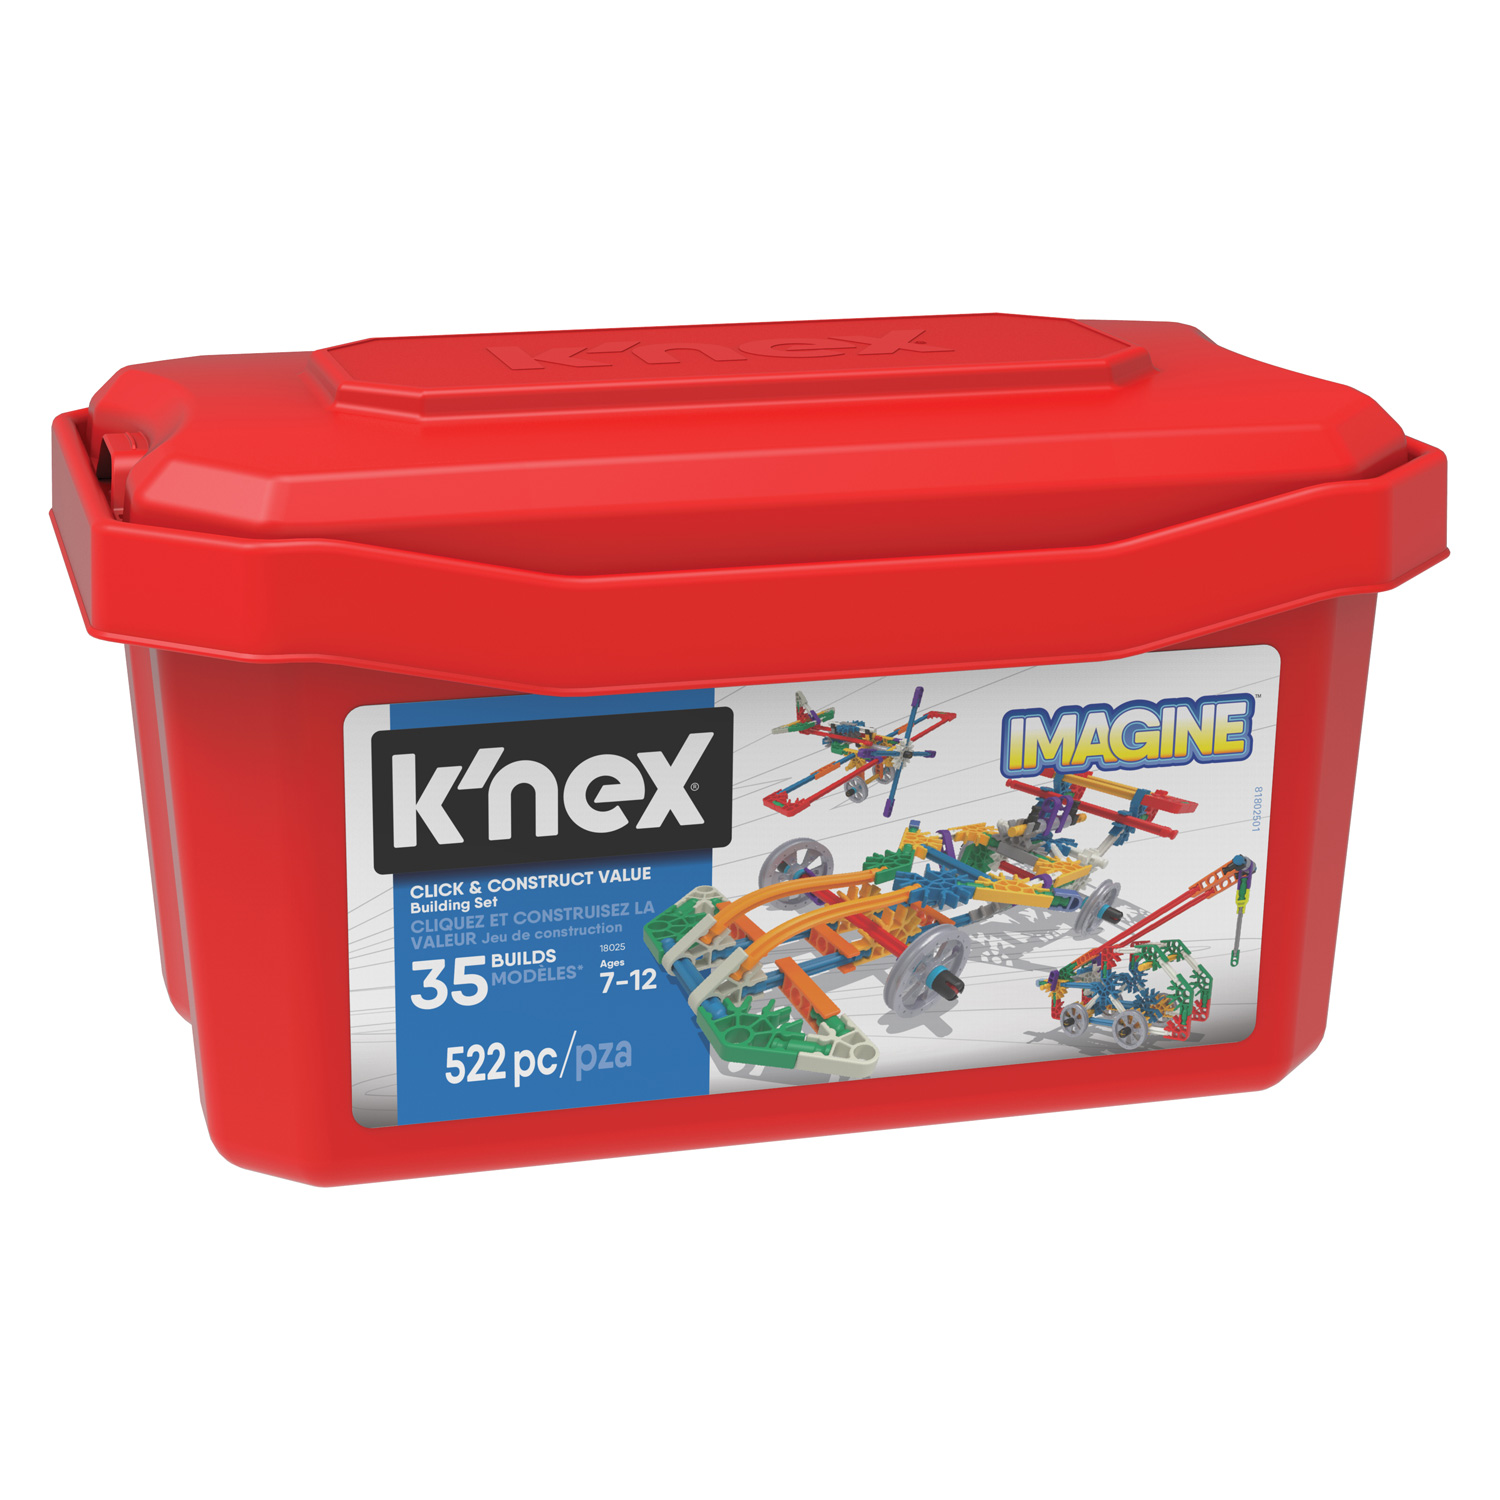 K'Nex Value Box, 522 dlg.